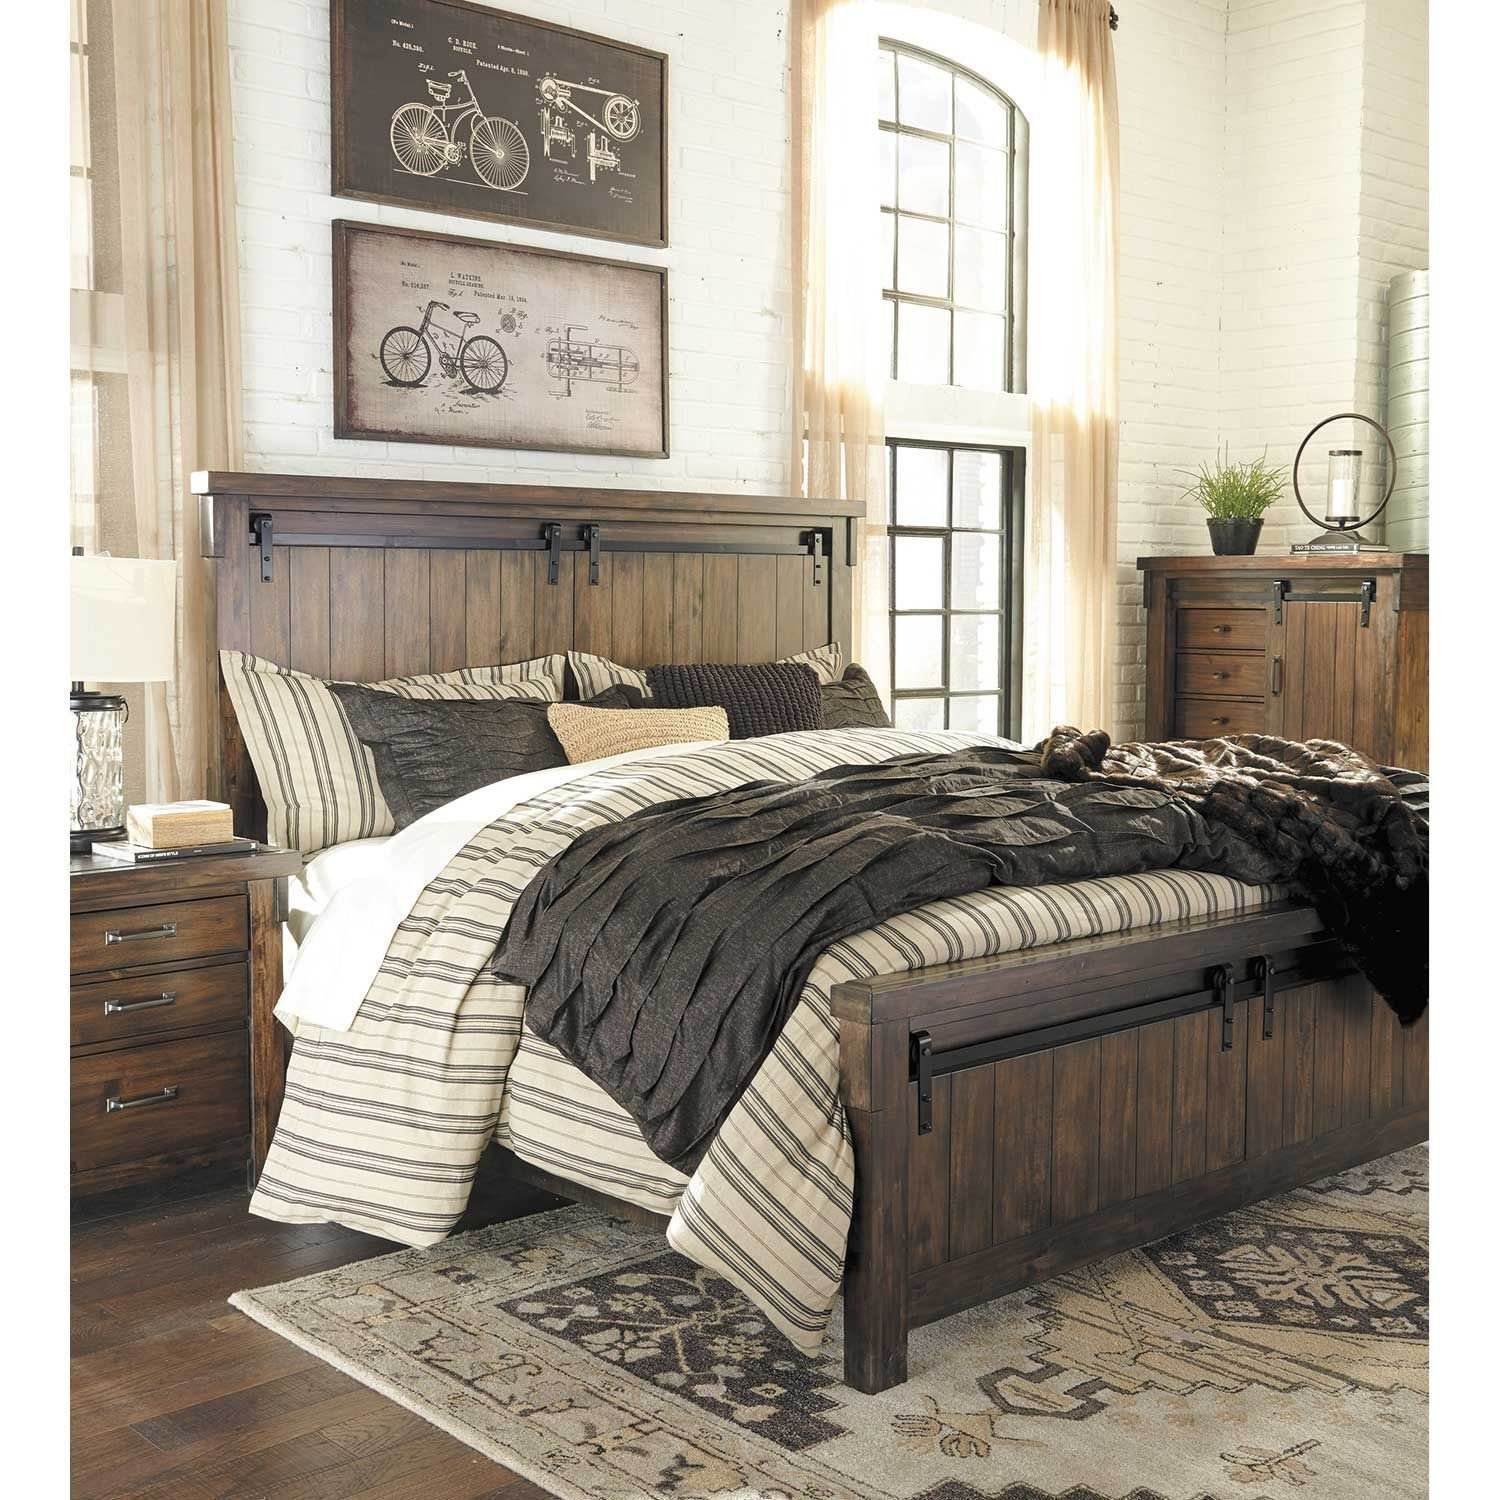 Best Lakeleigh 5 Piece Bedroom Set B718 Qbed 31 36 46 93 Ashley Furniture Afw With Pictures